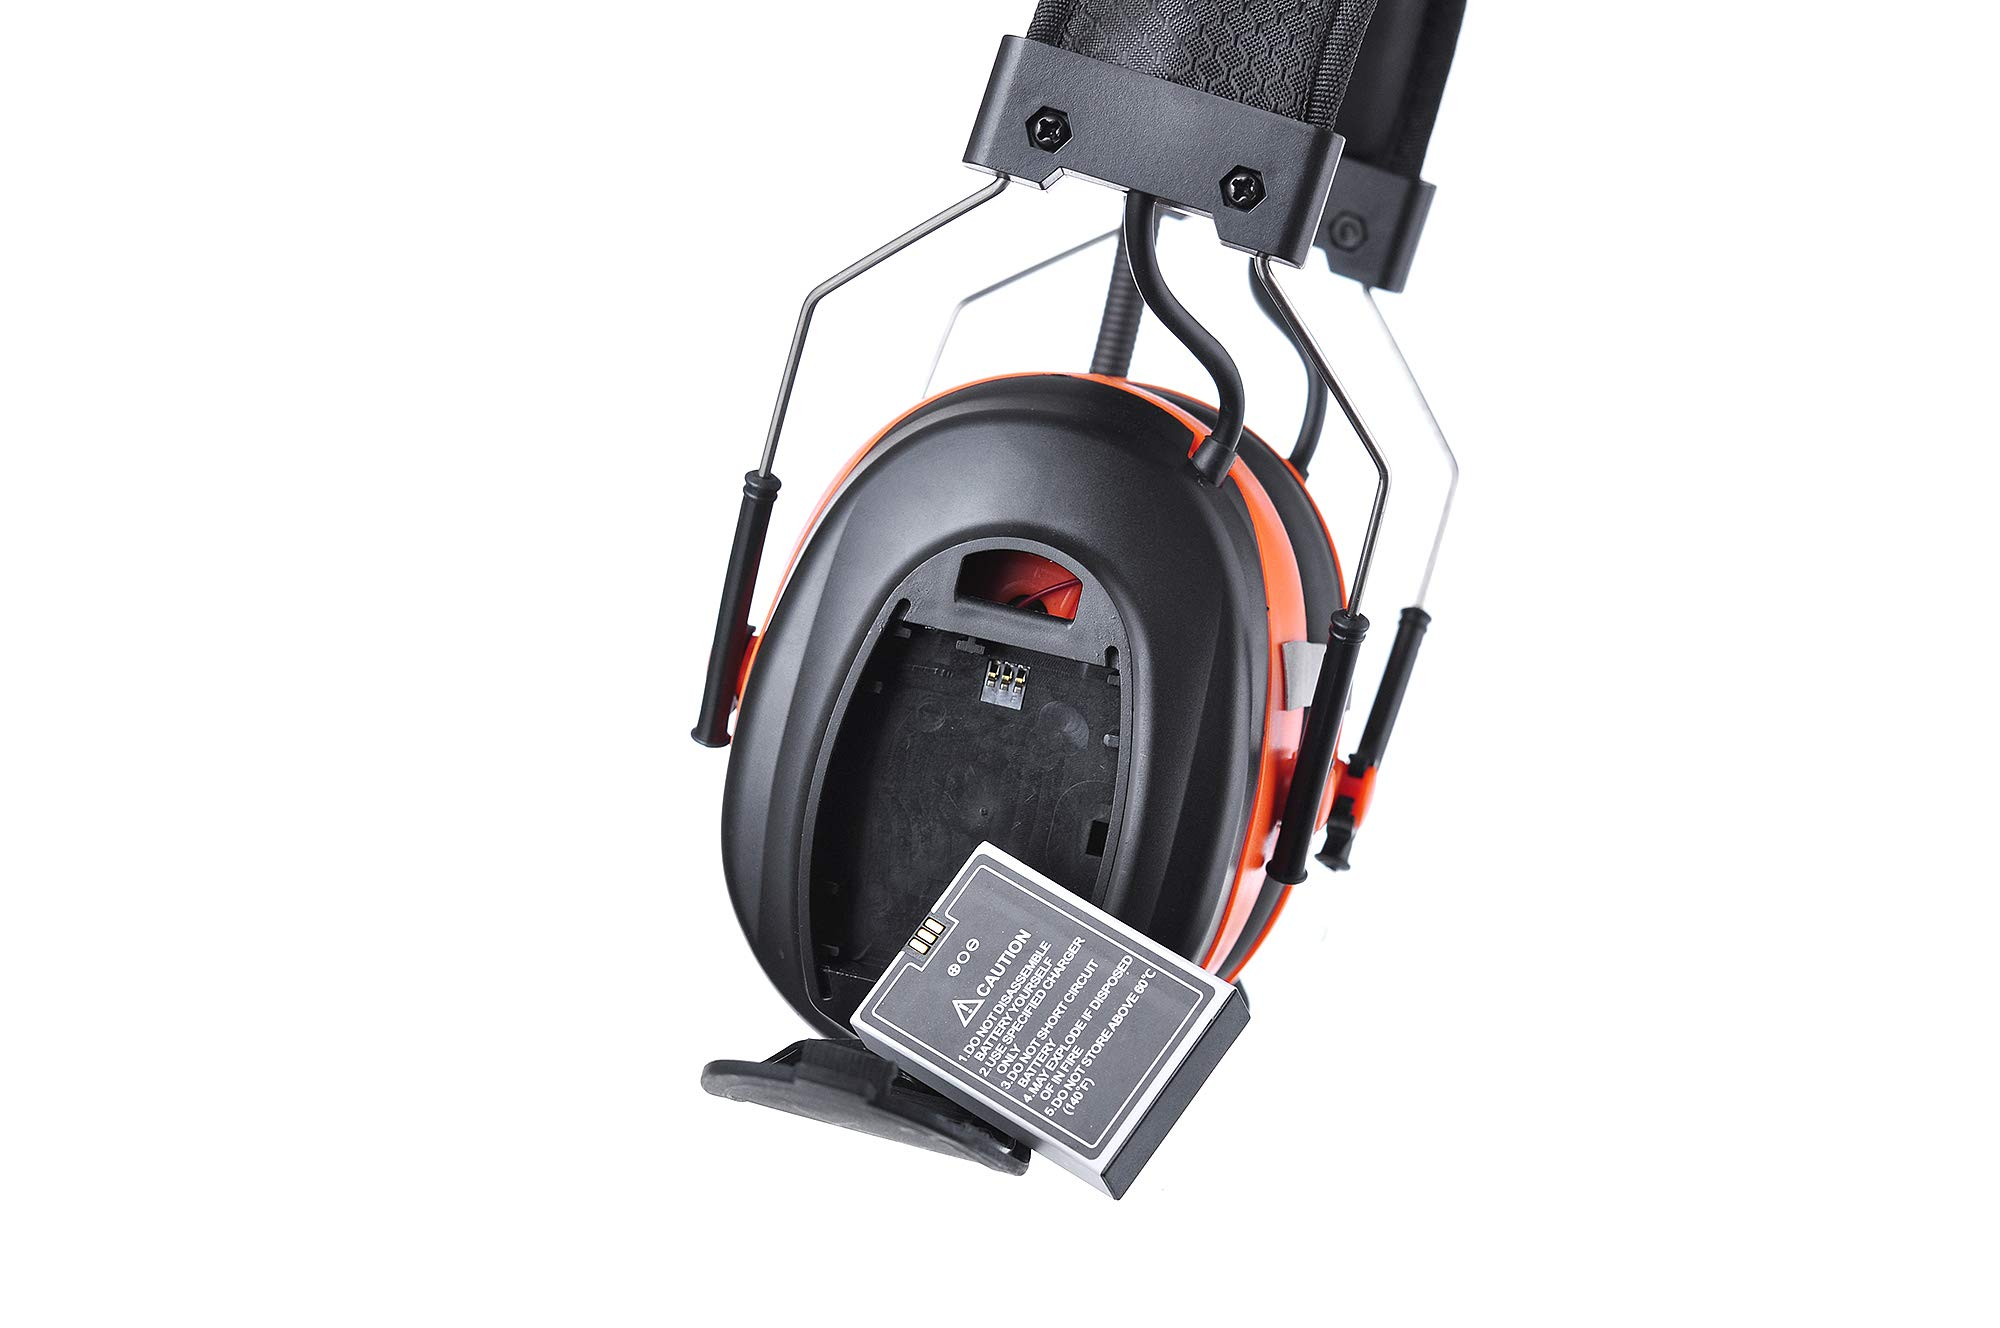 PROTEAR Bluetooth AM FM Radio Noise Reduction Safety Ear Muffs with Rechargeable Lithium Battery - Adjustable NRR 25dB Electronic Ear Hearing Protection lawn mower work headphones,with a Earmuff Clip by PROTEAR (Image #7)